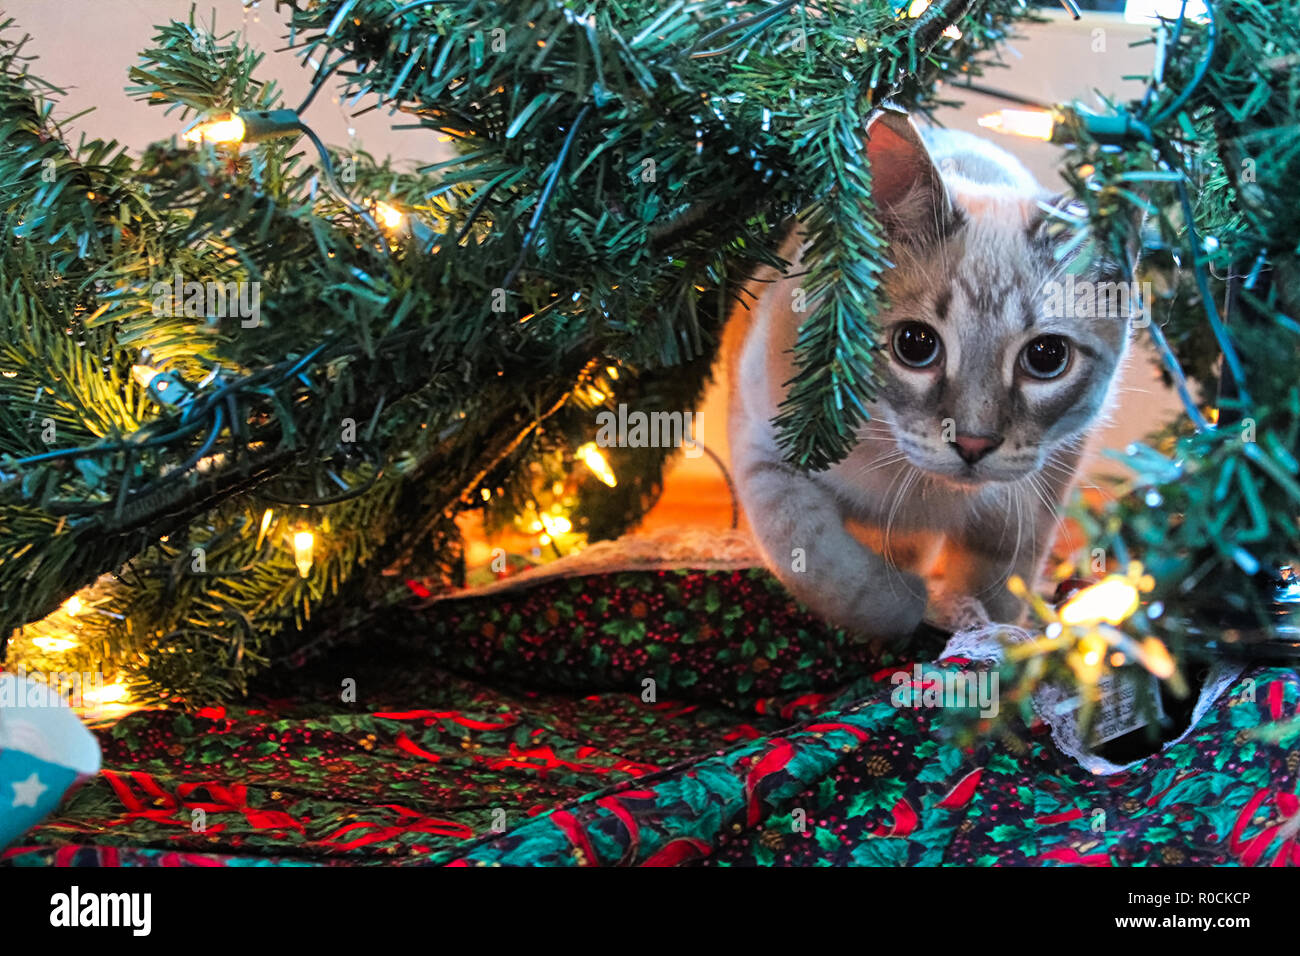 A cat playfully stalks through a Christmas Tree - Stock Image